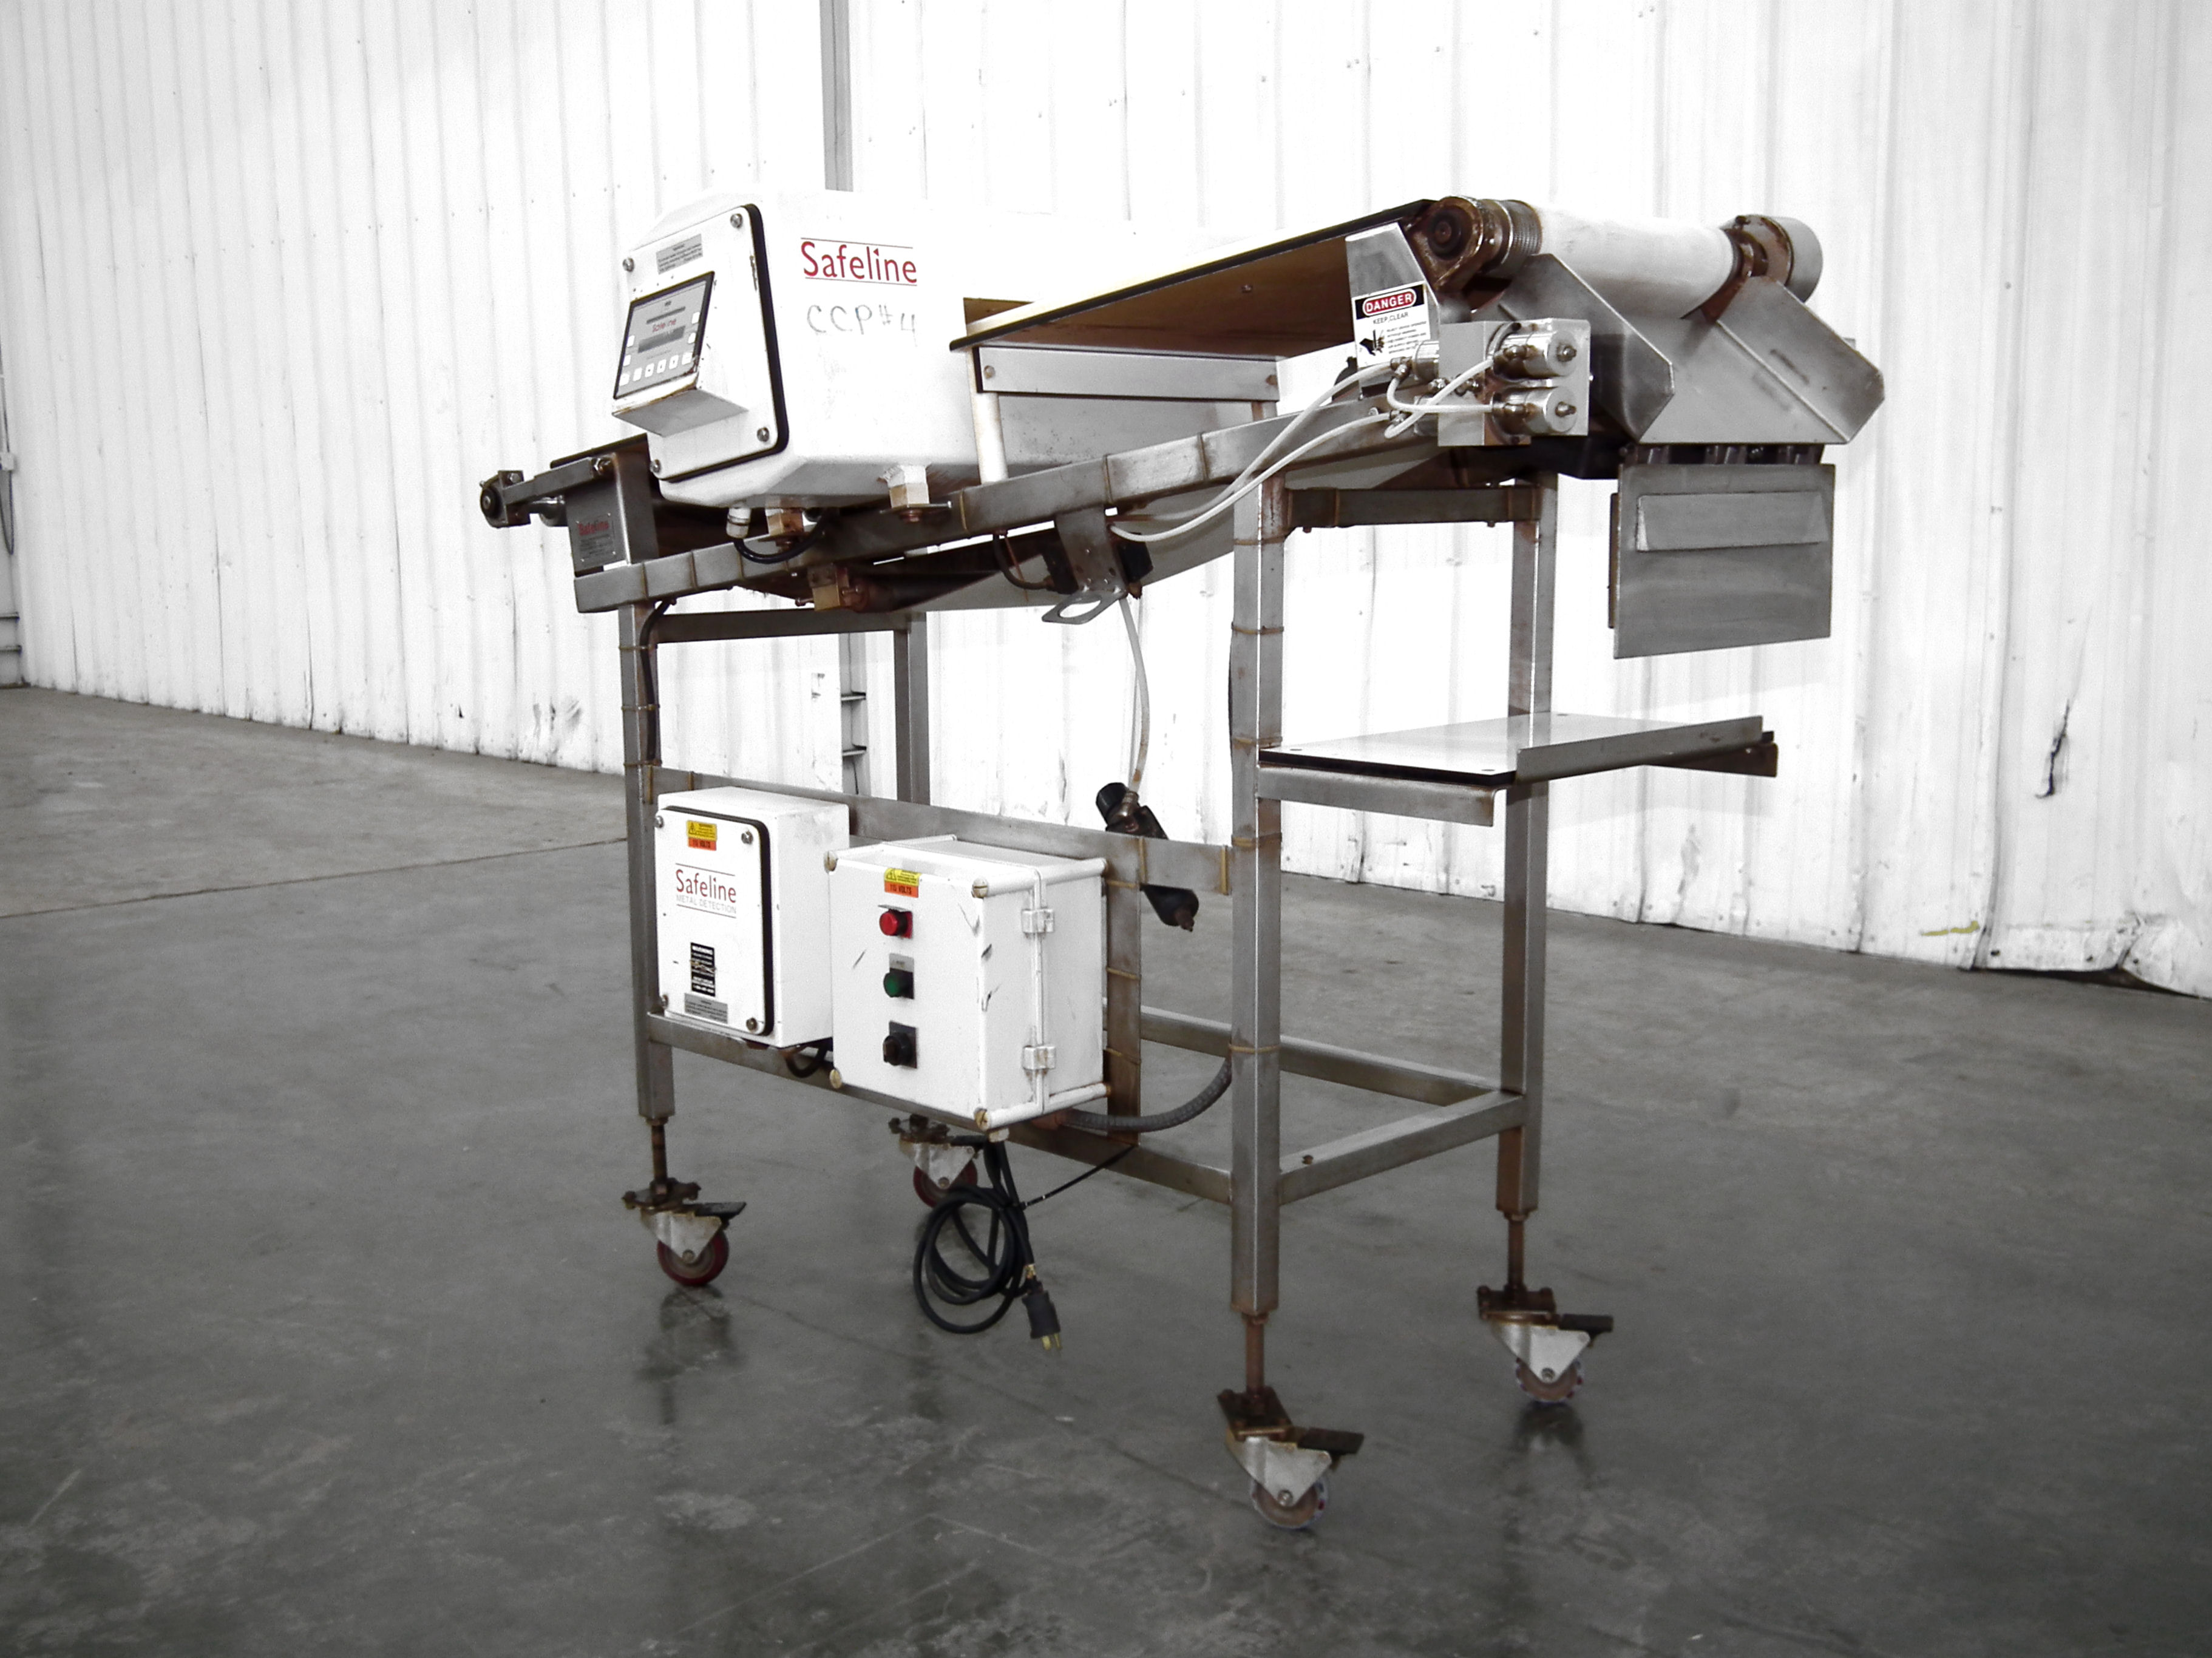 "Safeline Metal Detector 16"" Wide x 2"" High B4345 - Image 2 of 10"